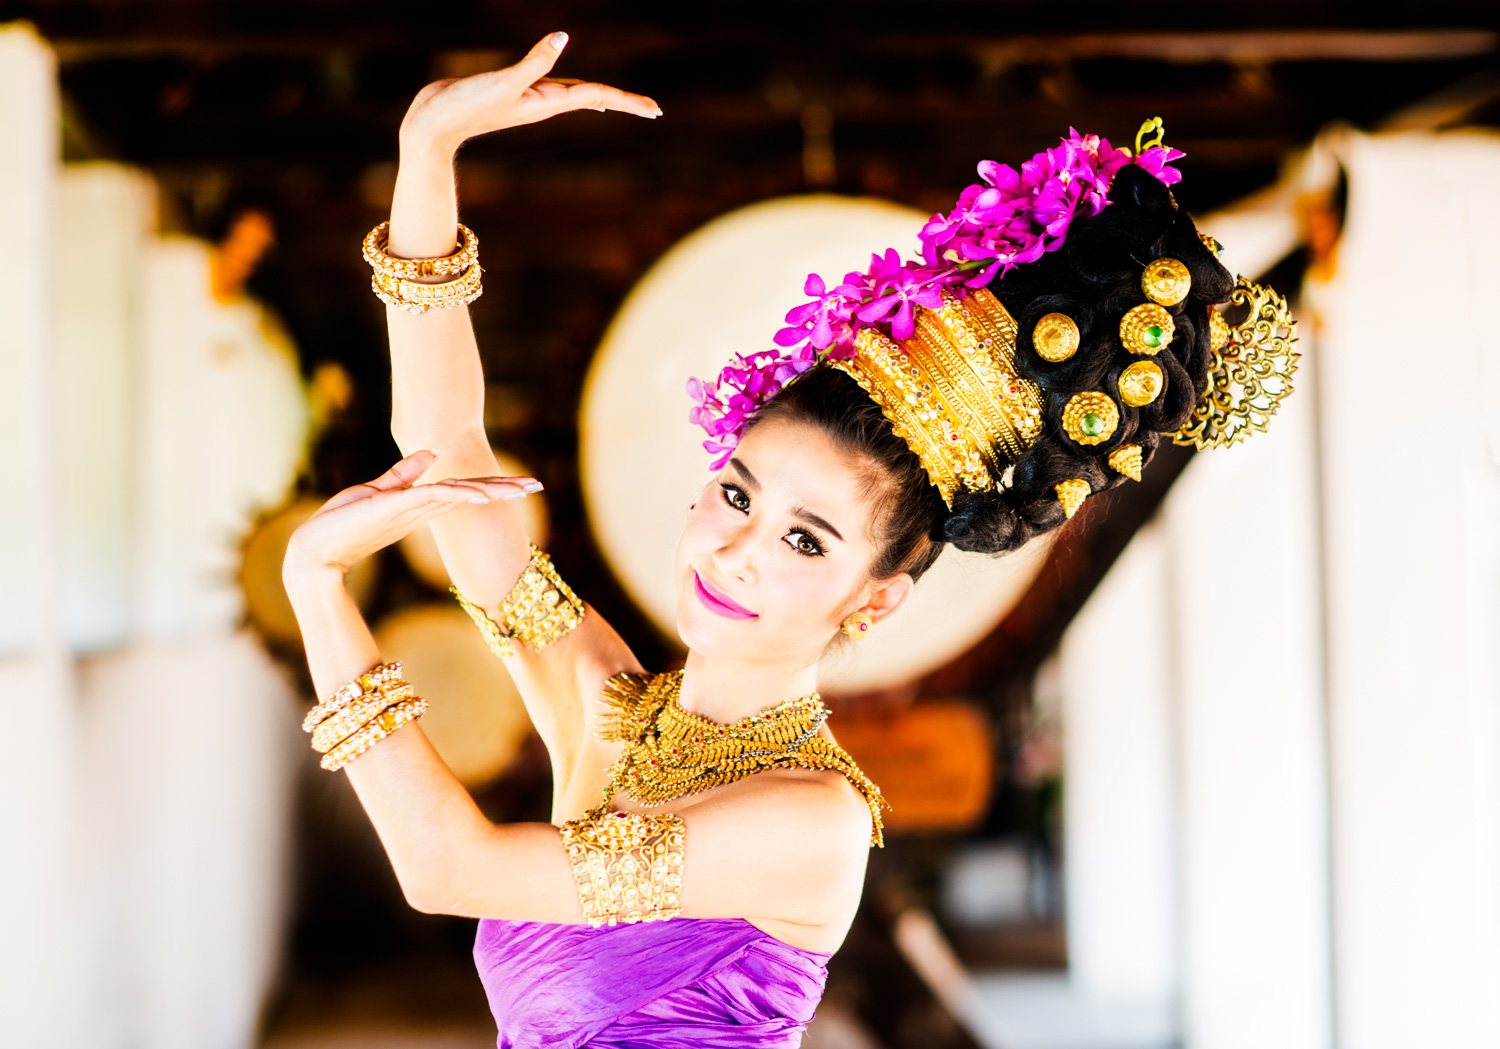 How To Control Your Depth of Field Thai dancer